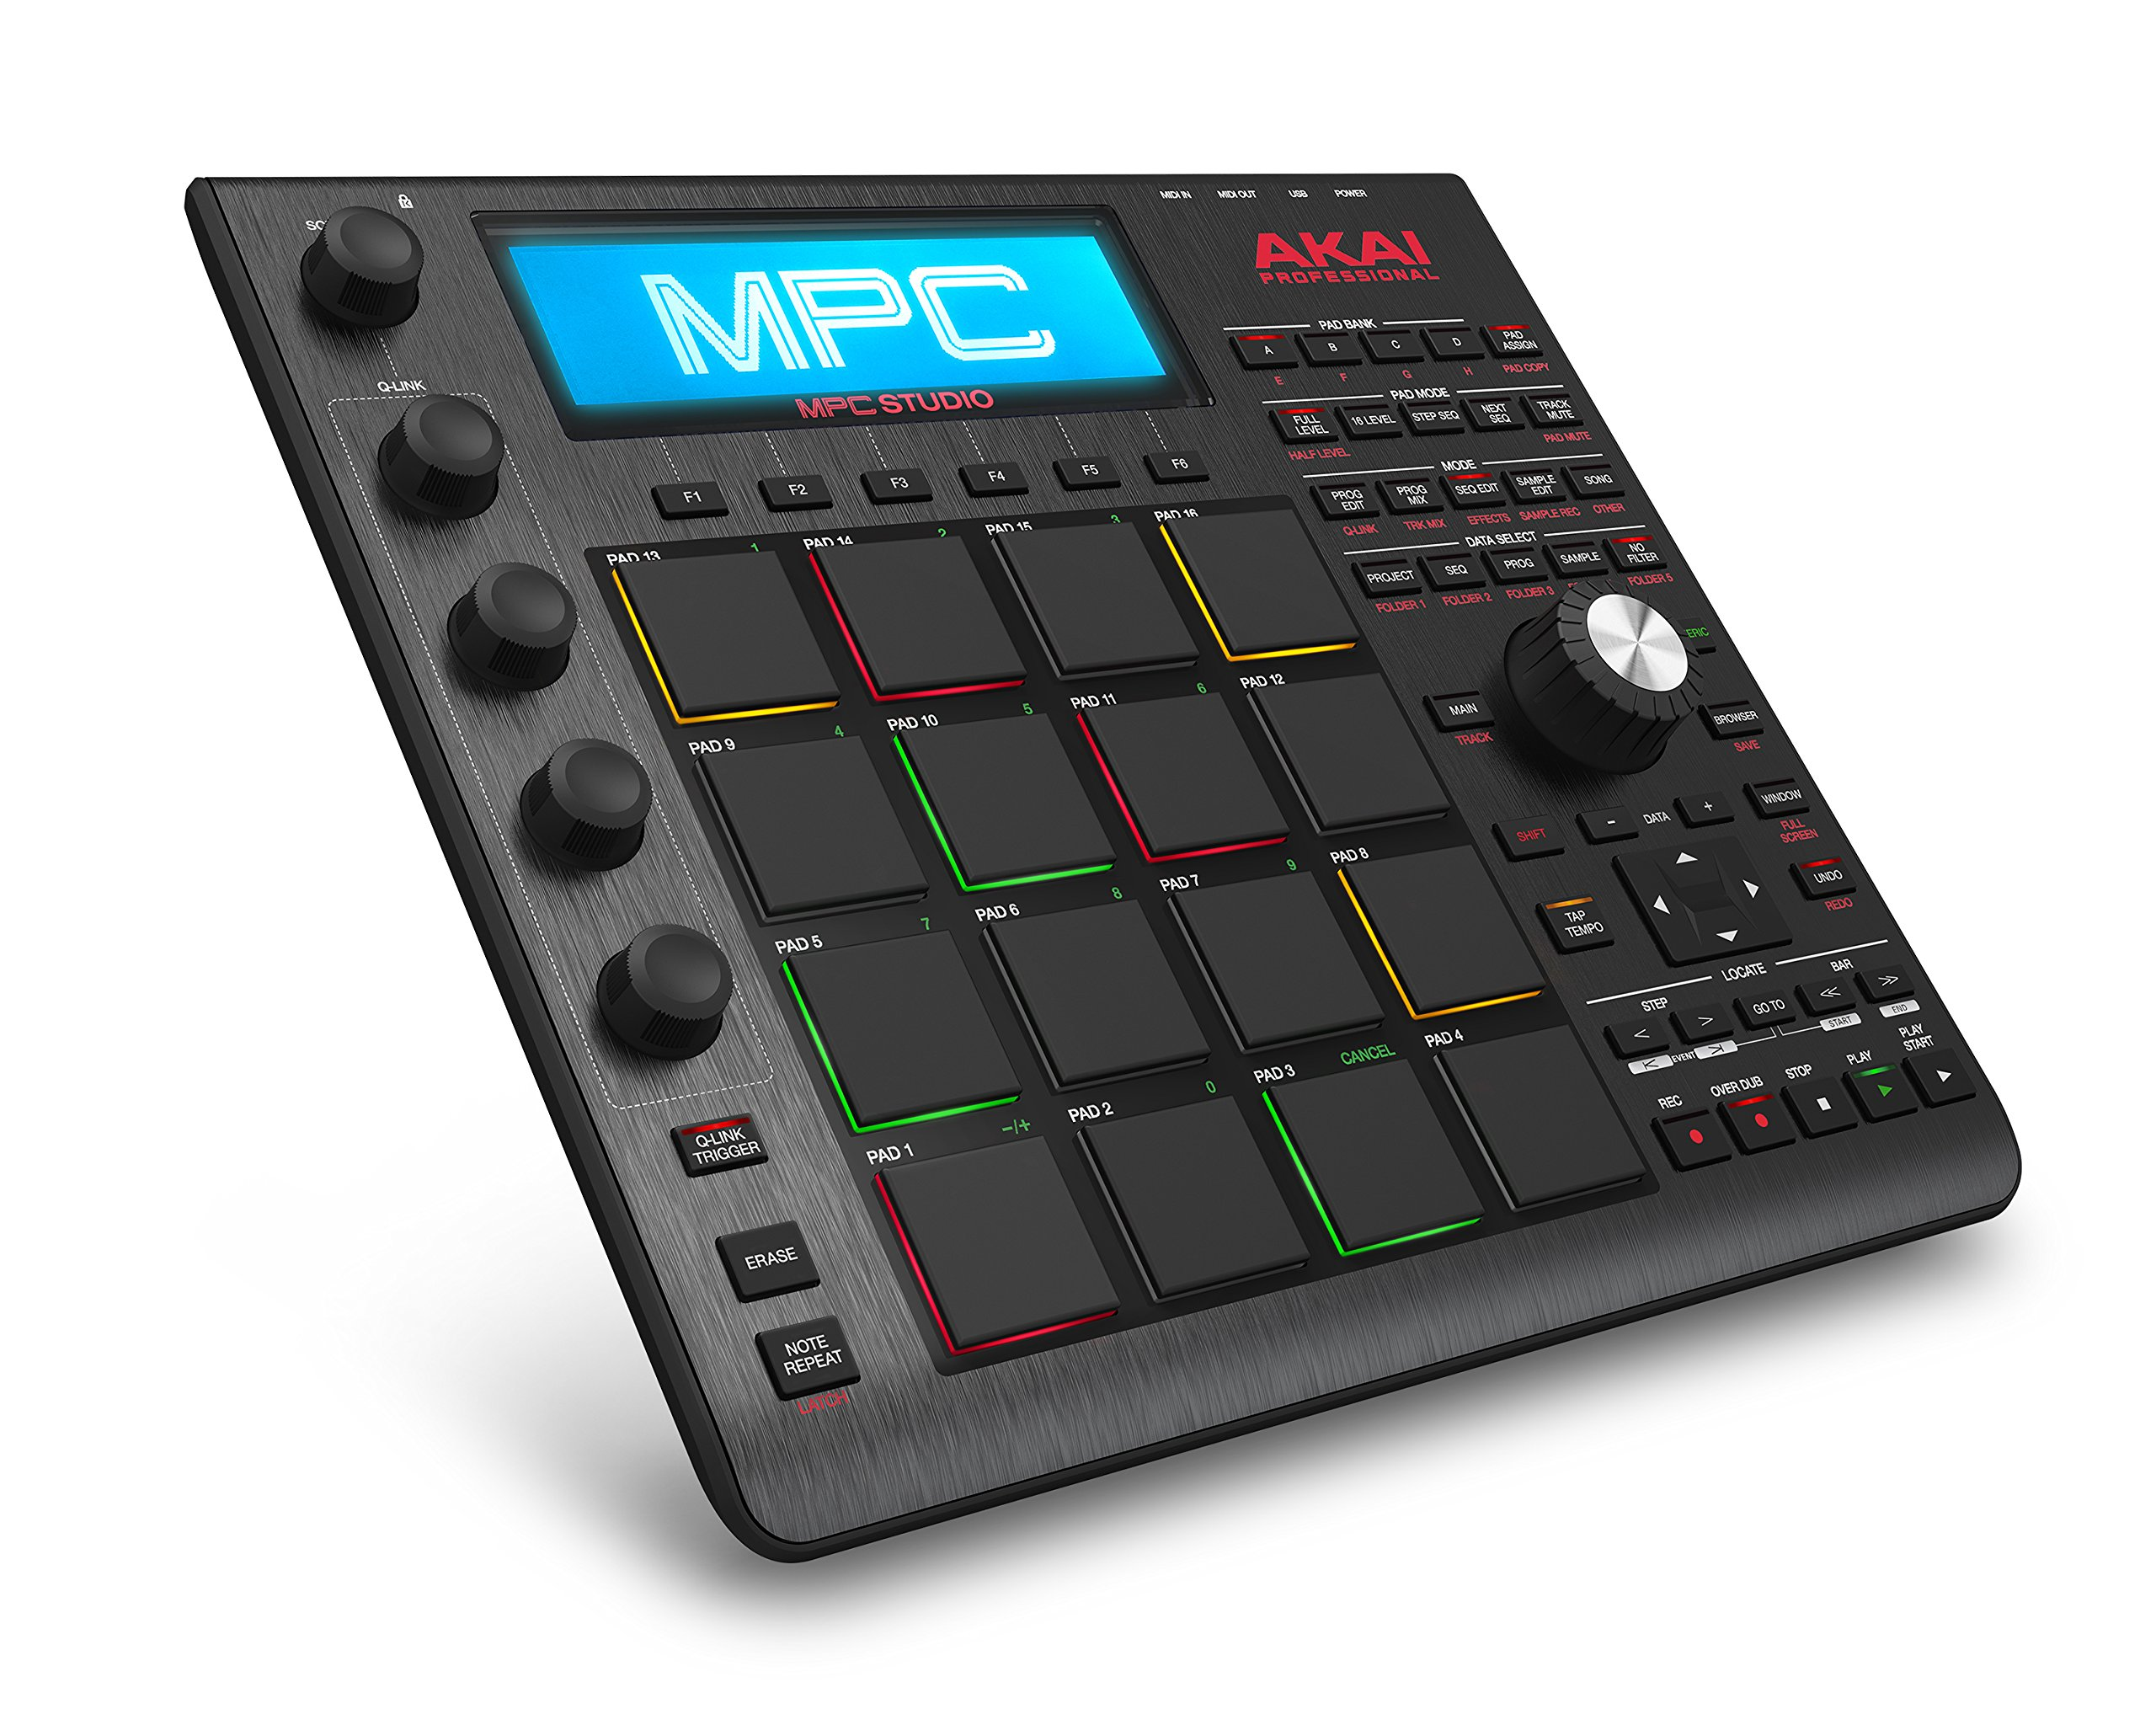 Akai Professional MPC Studio Black Music Production Controller with 7+GB Sound Library Download by Akai Professional